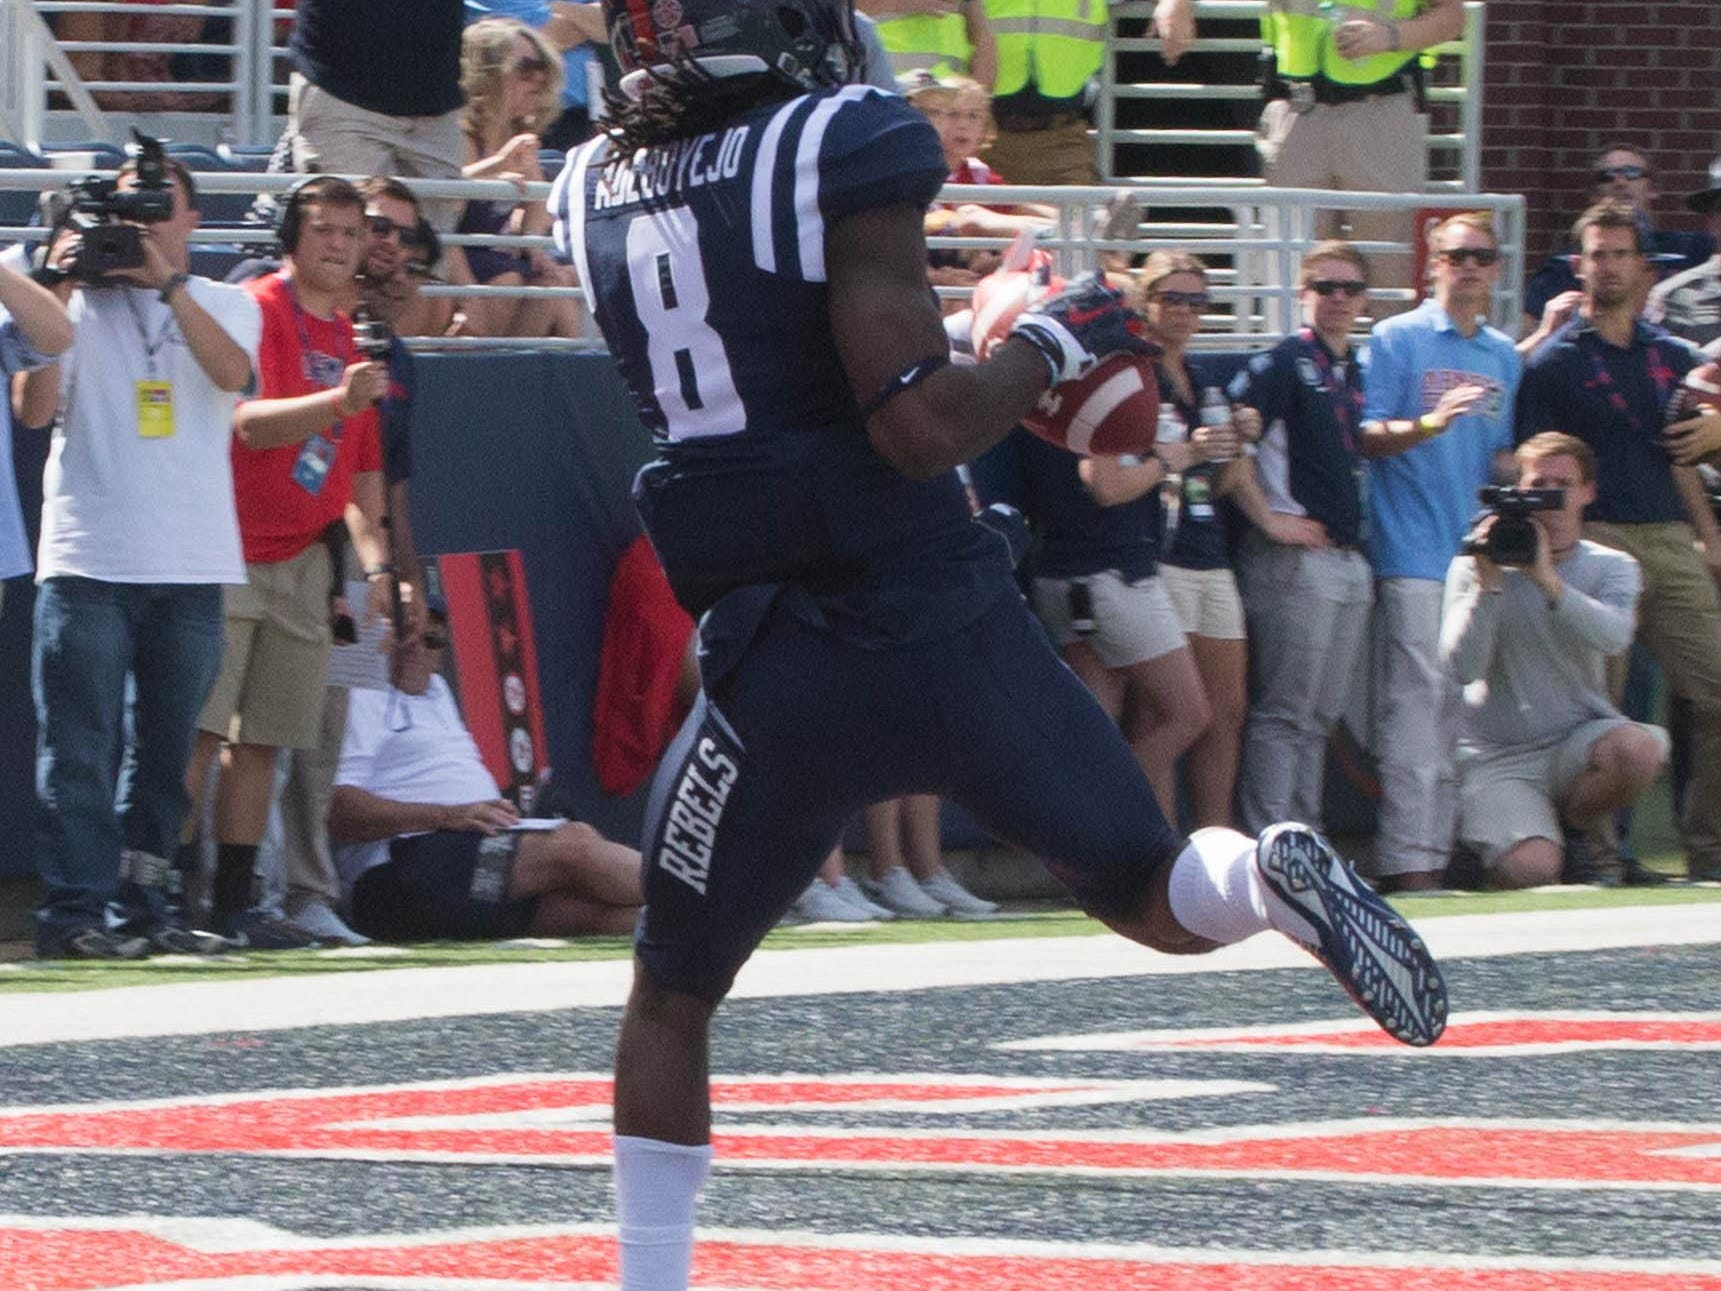 Quincy Adeboyejo lands a 44 yard pass from Chad Kelly for a touchdown.